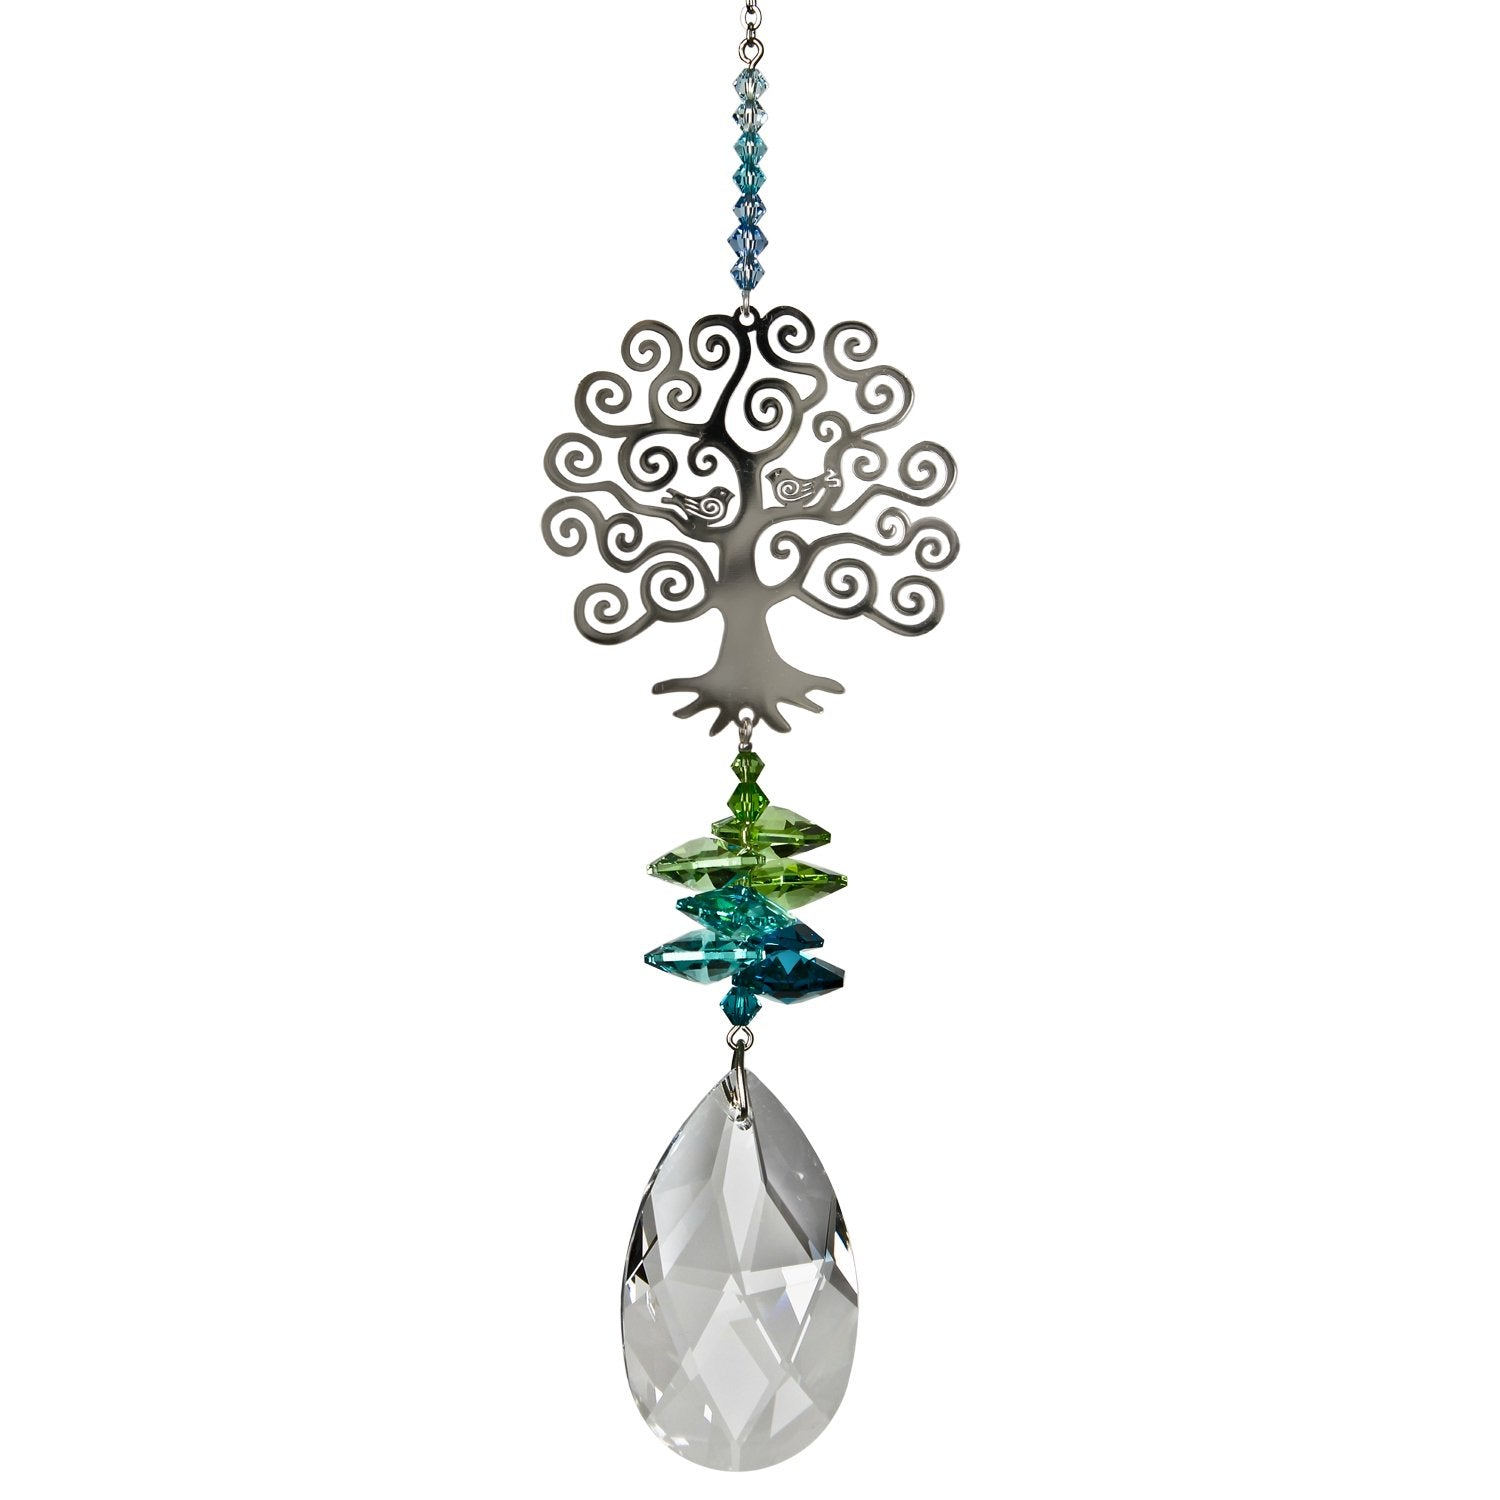 Crystal Fantasy Suncatcher - Large, Tree of Life alternate product image